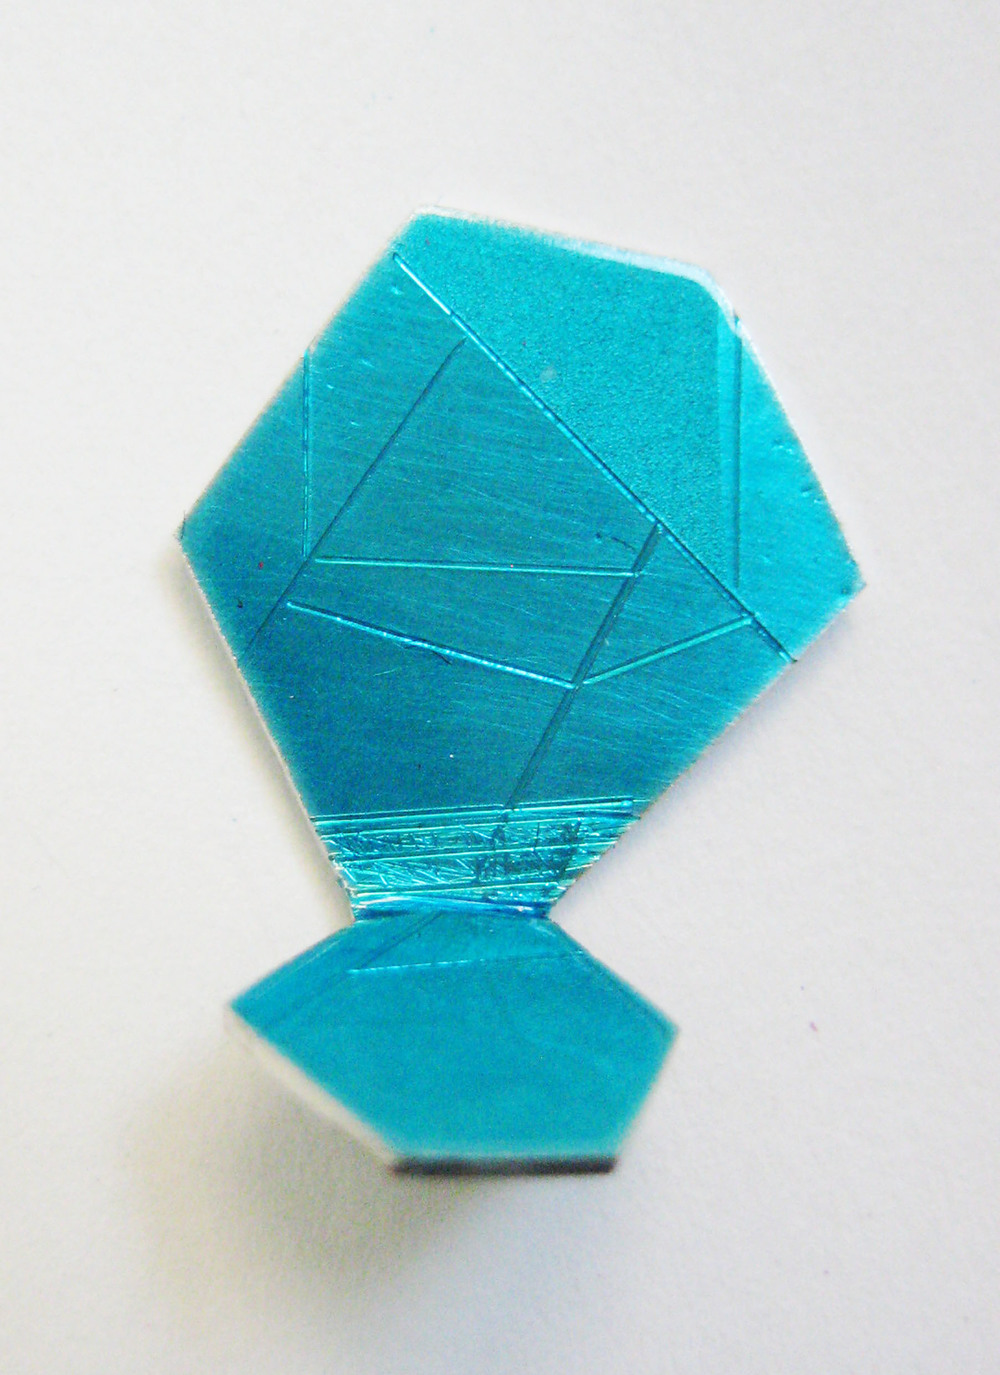 15-Teal Pin Gem-Voegele.jpg